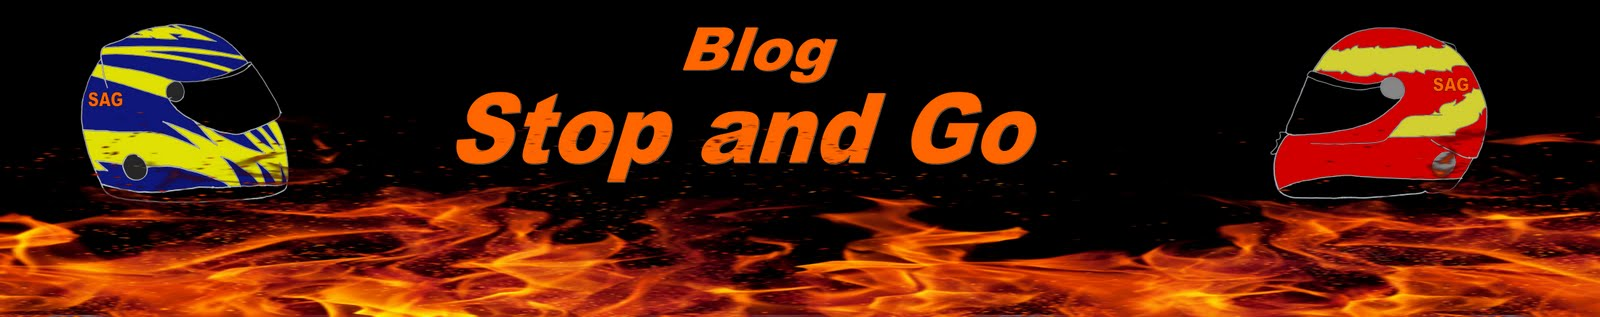 Blog Stop and Go - 3 Temporada